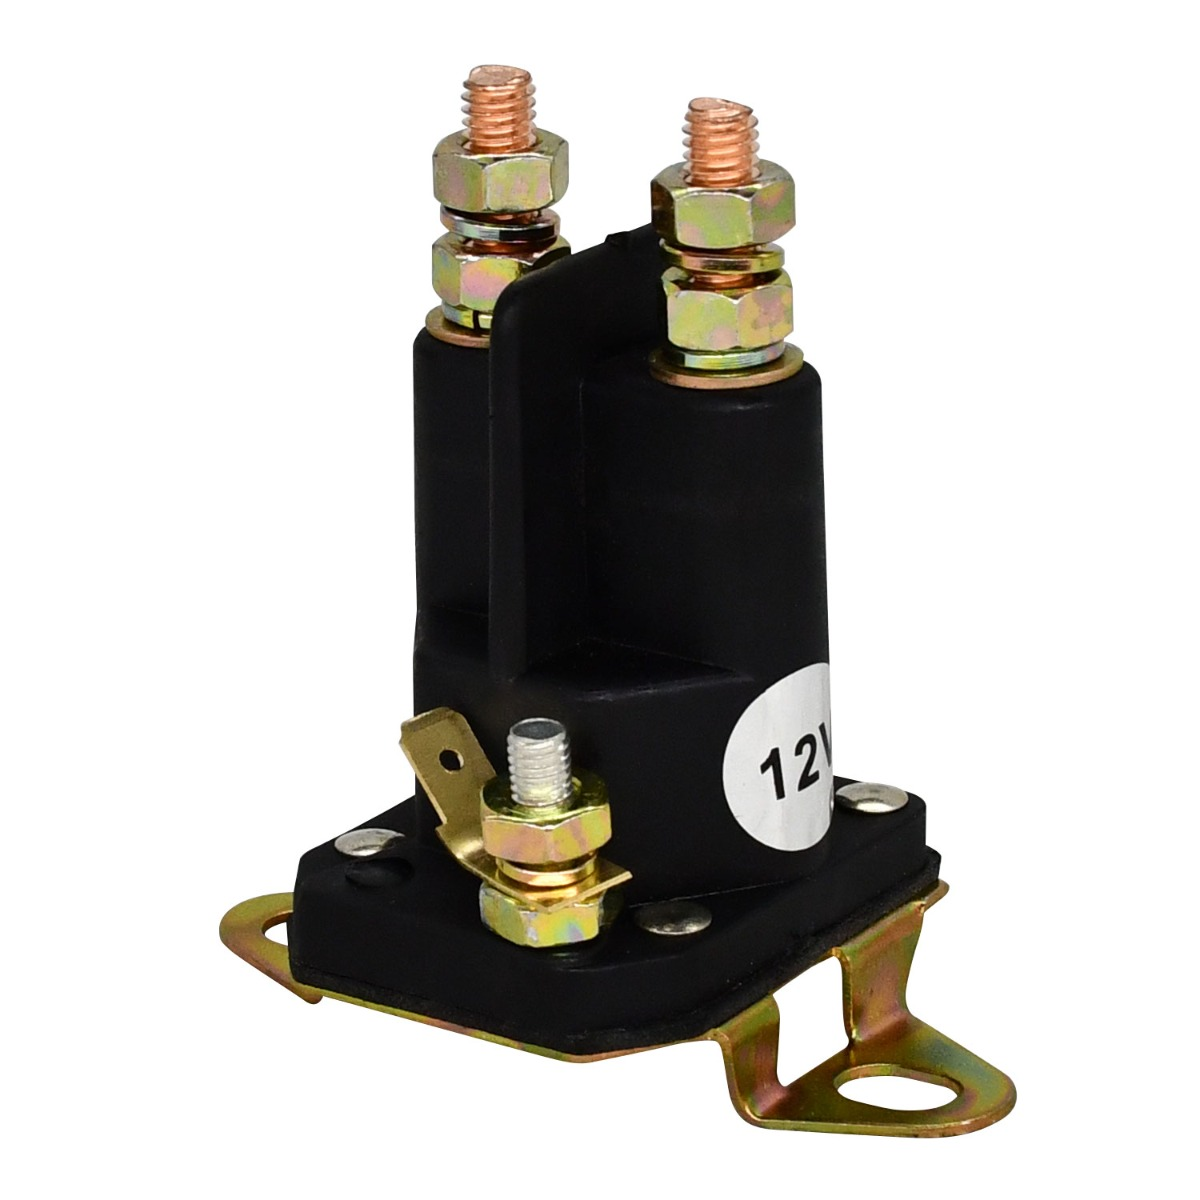 Starter Solenoid 852-1221-210 12V Compatible with Trombetta